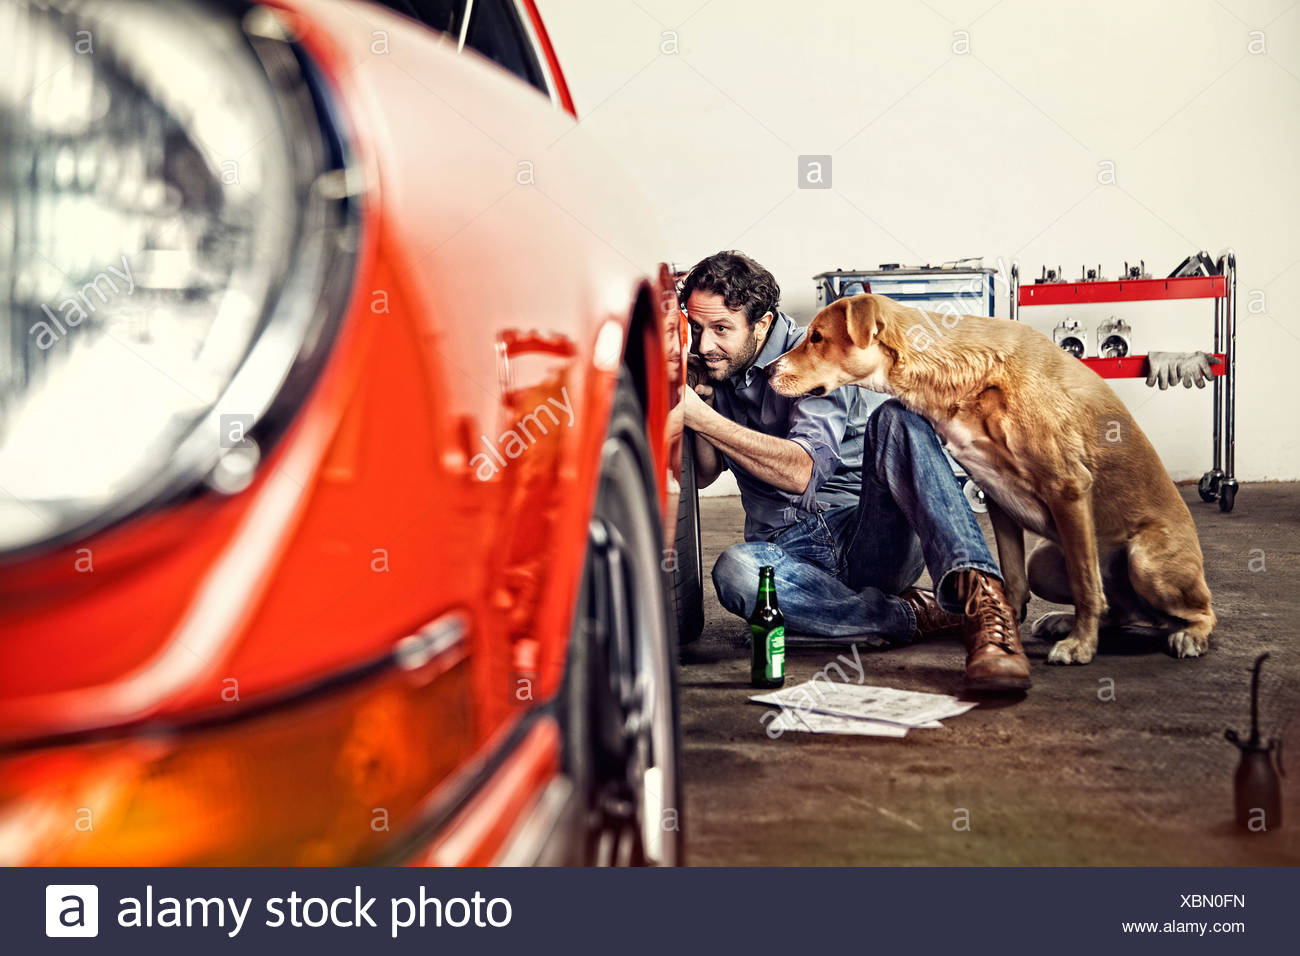 Man repairing his vintage car - Stock Image